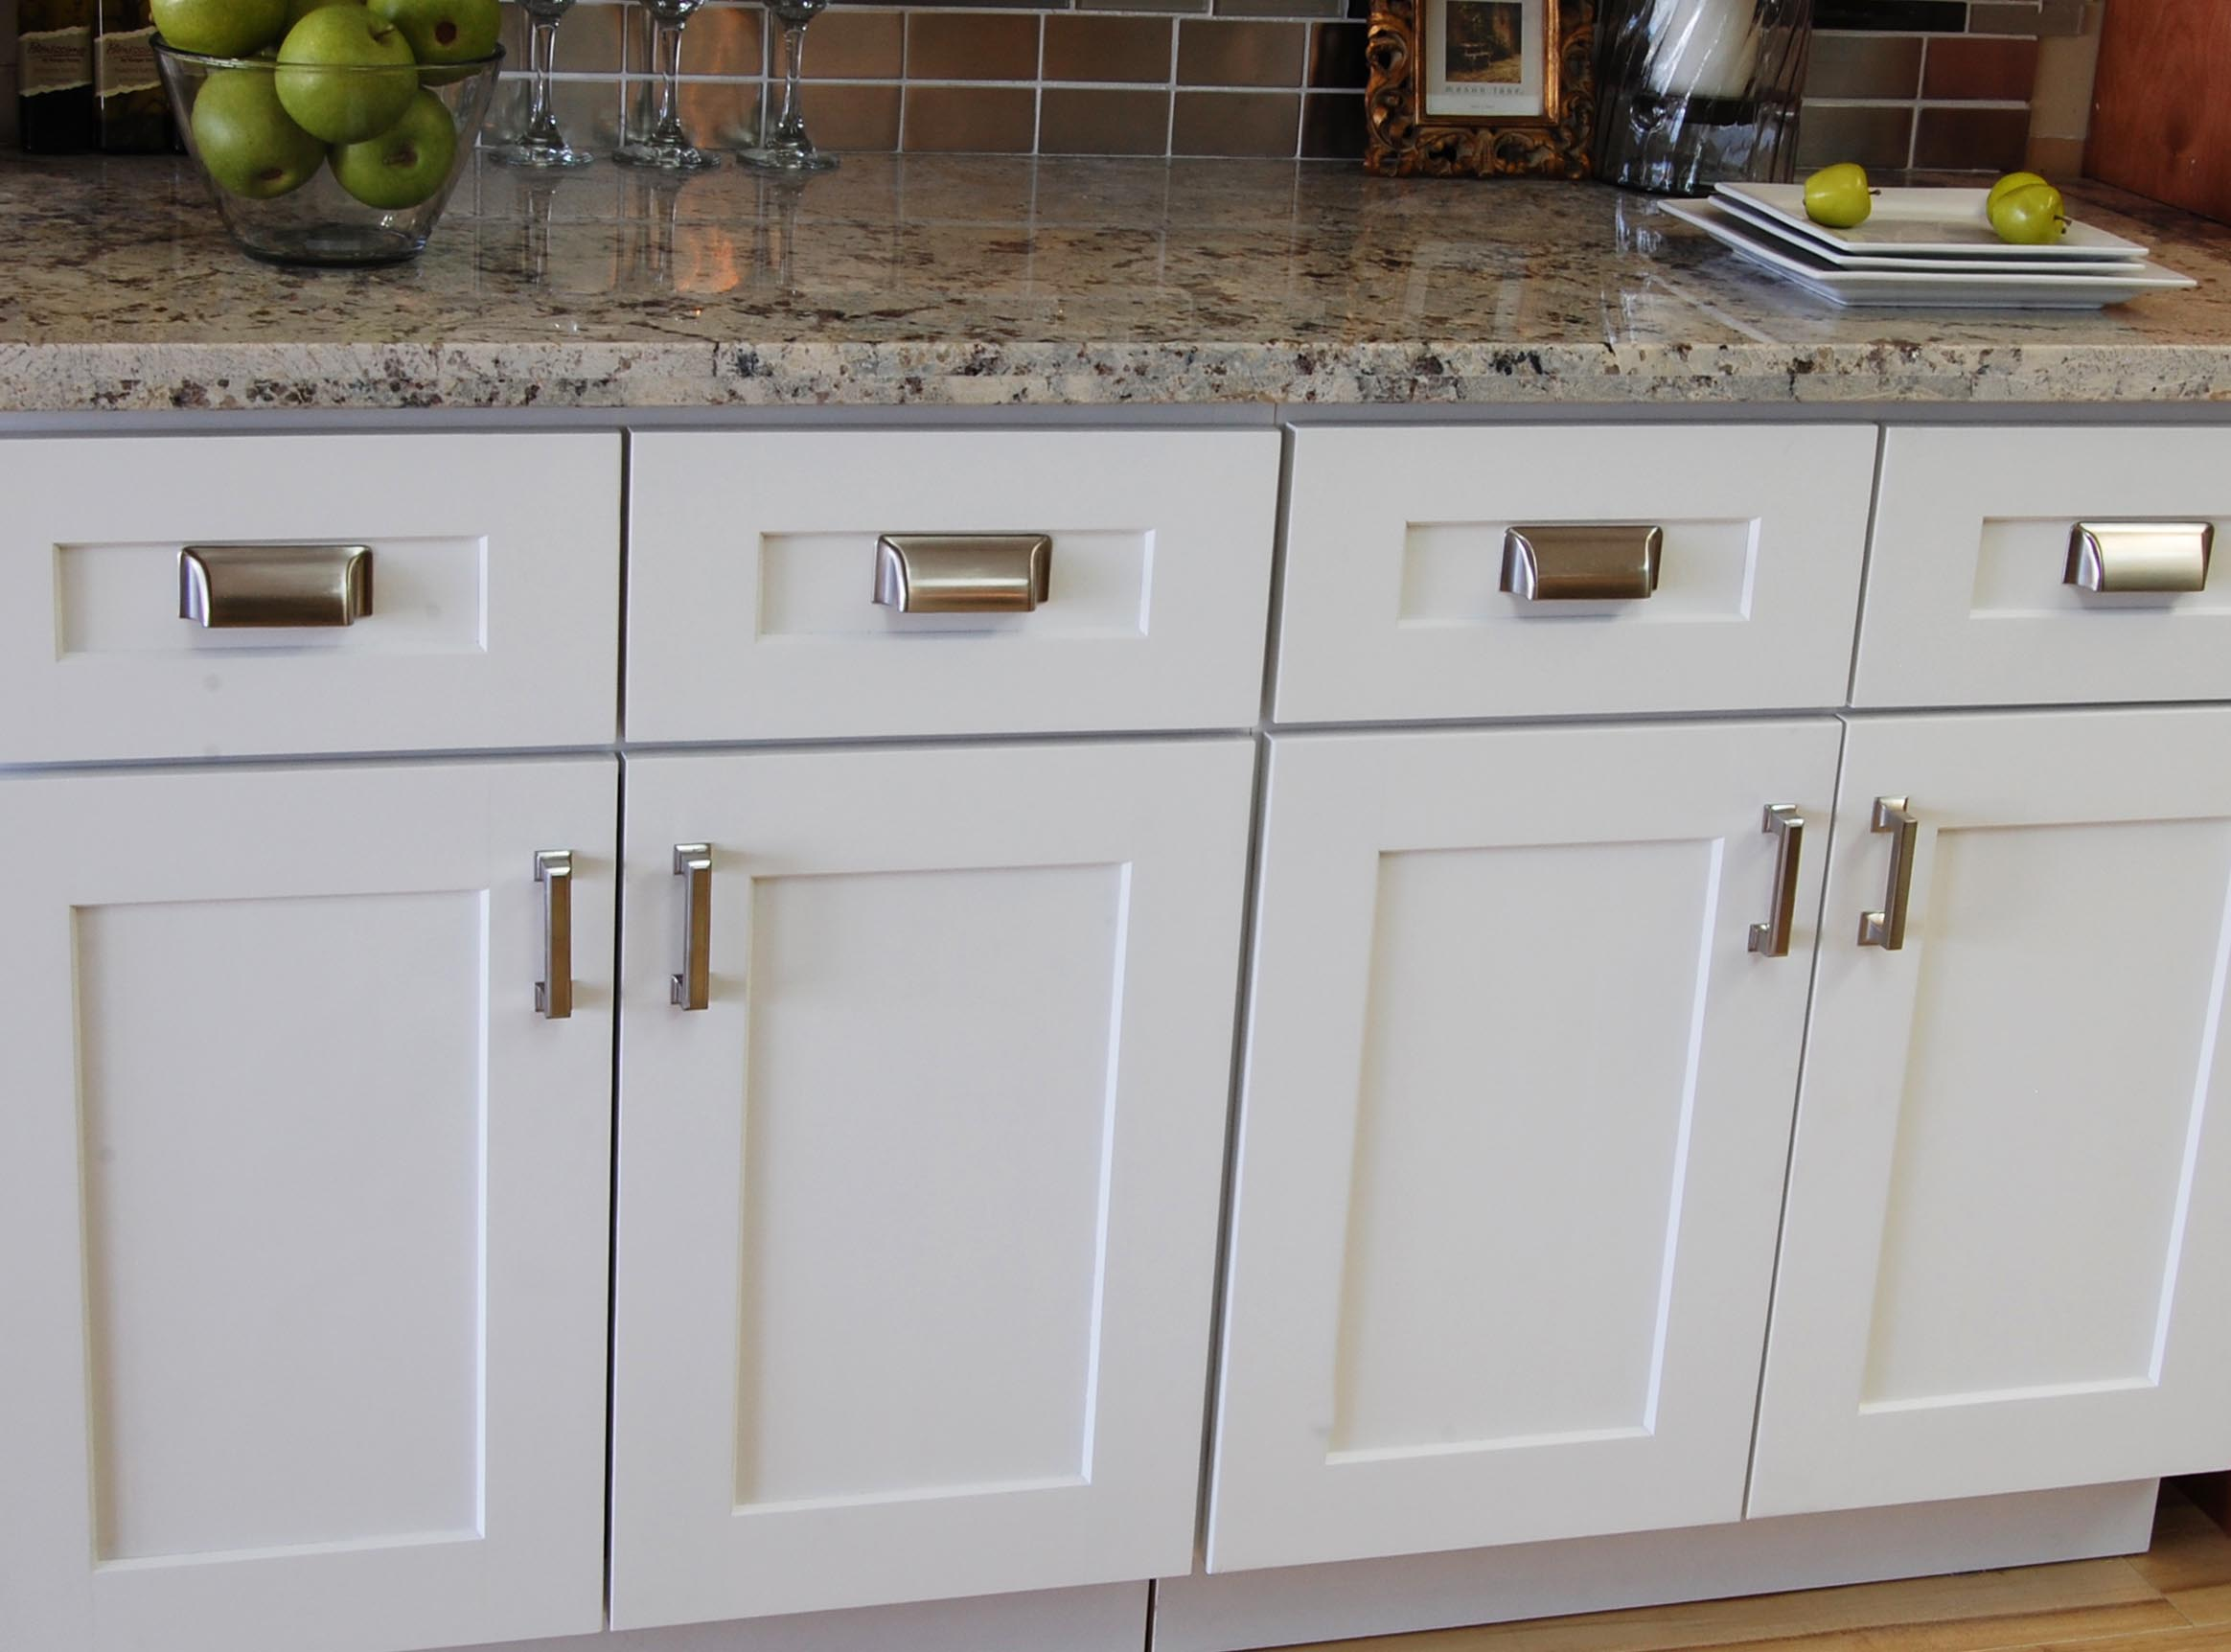 Chrome Handles For Kitchen Cabinets White Shaker Kitchen Cabinet Doors With Chrome Handles